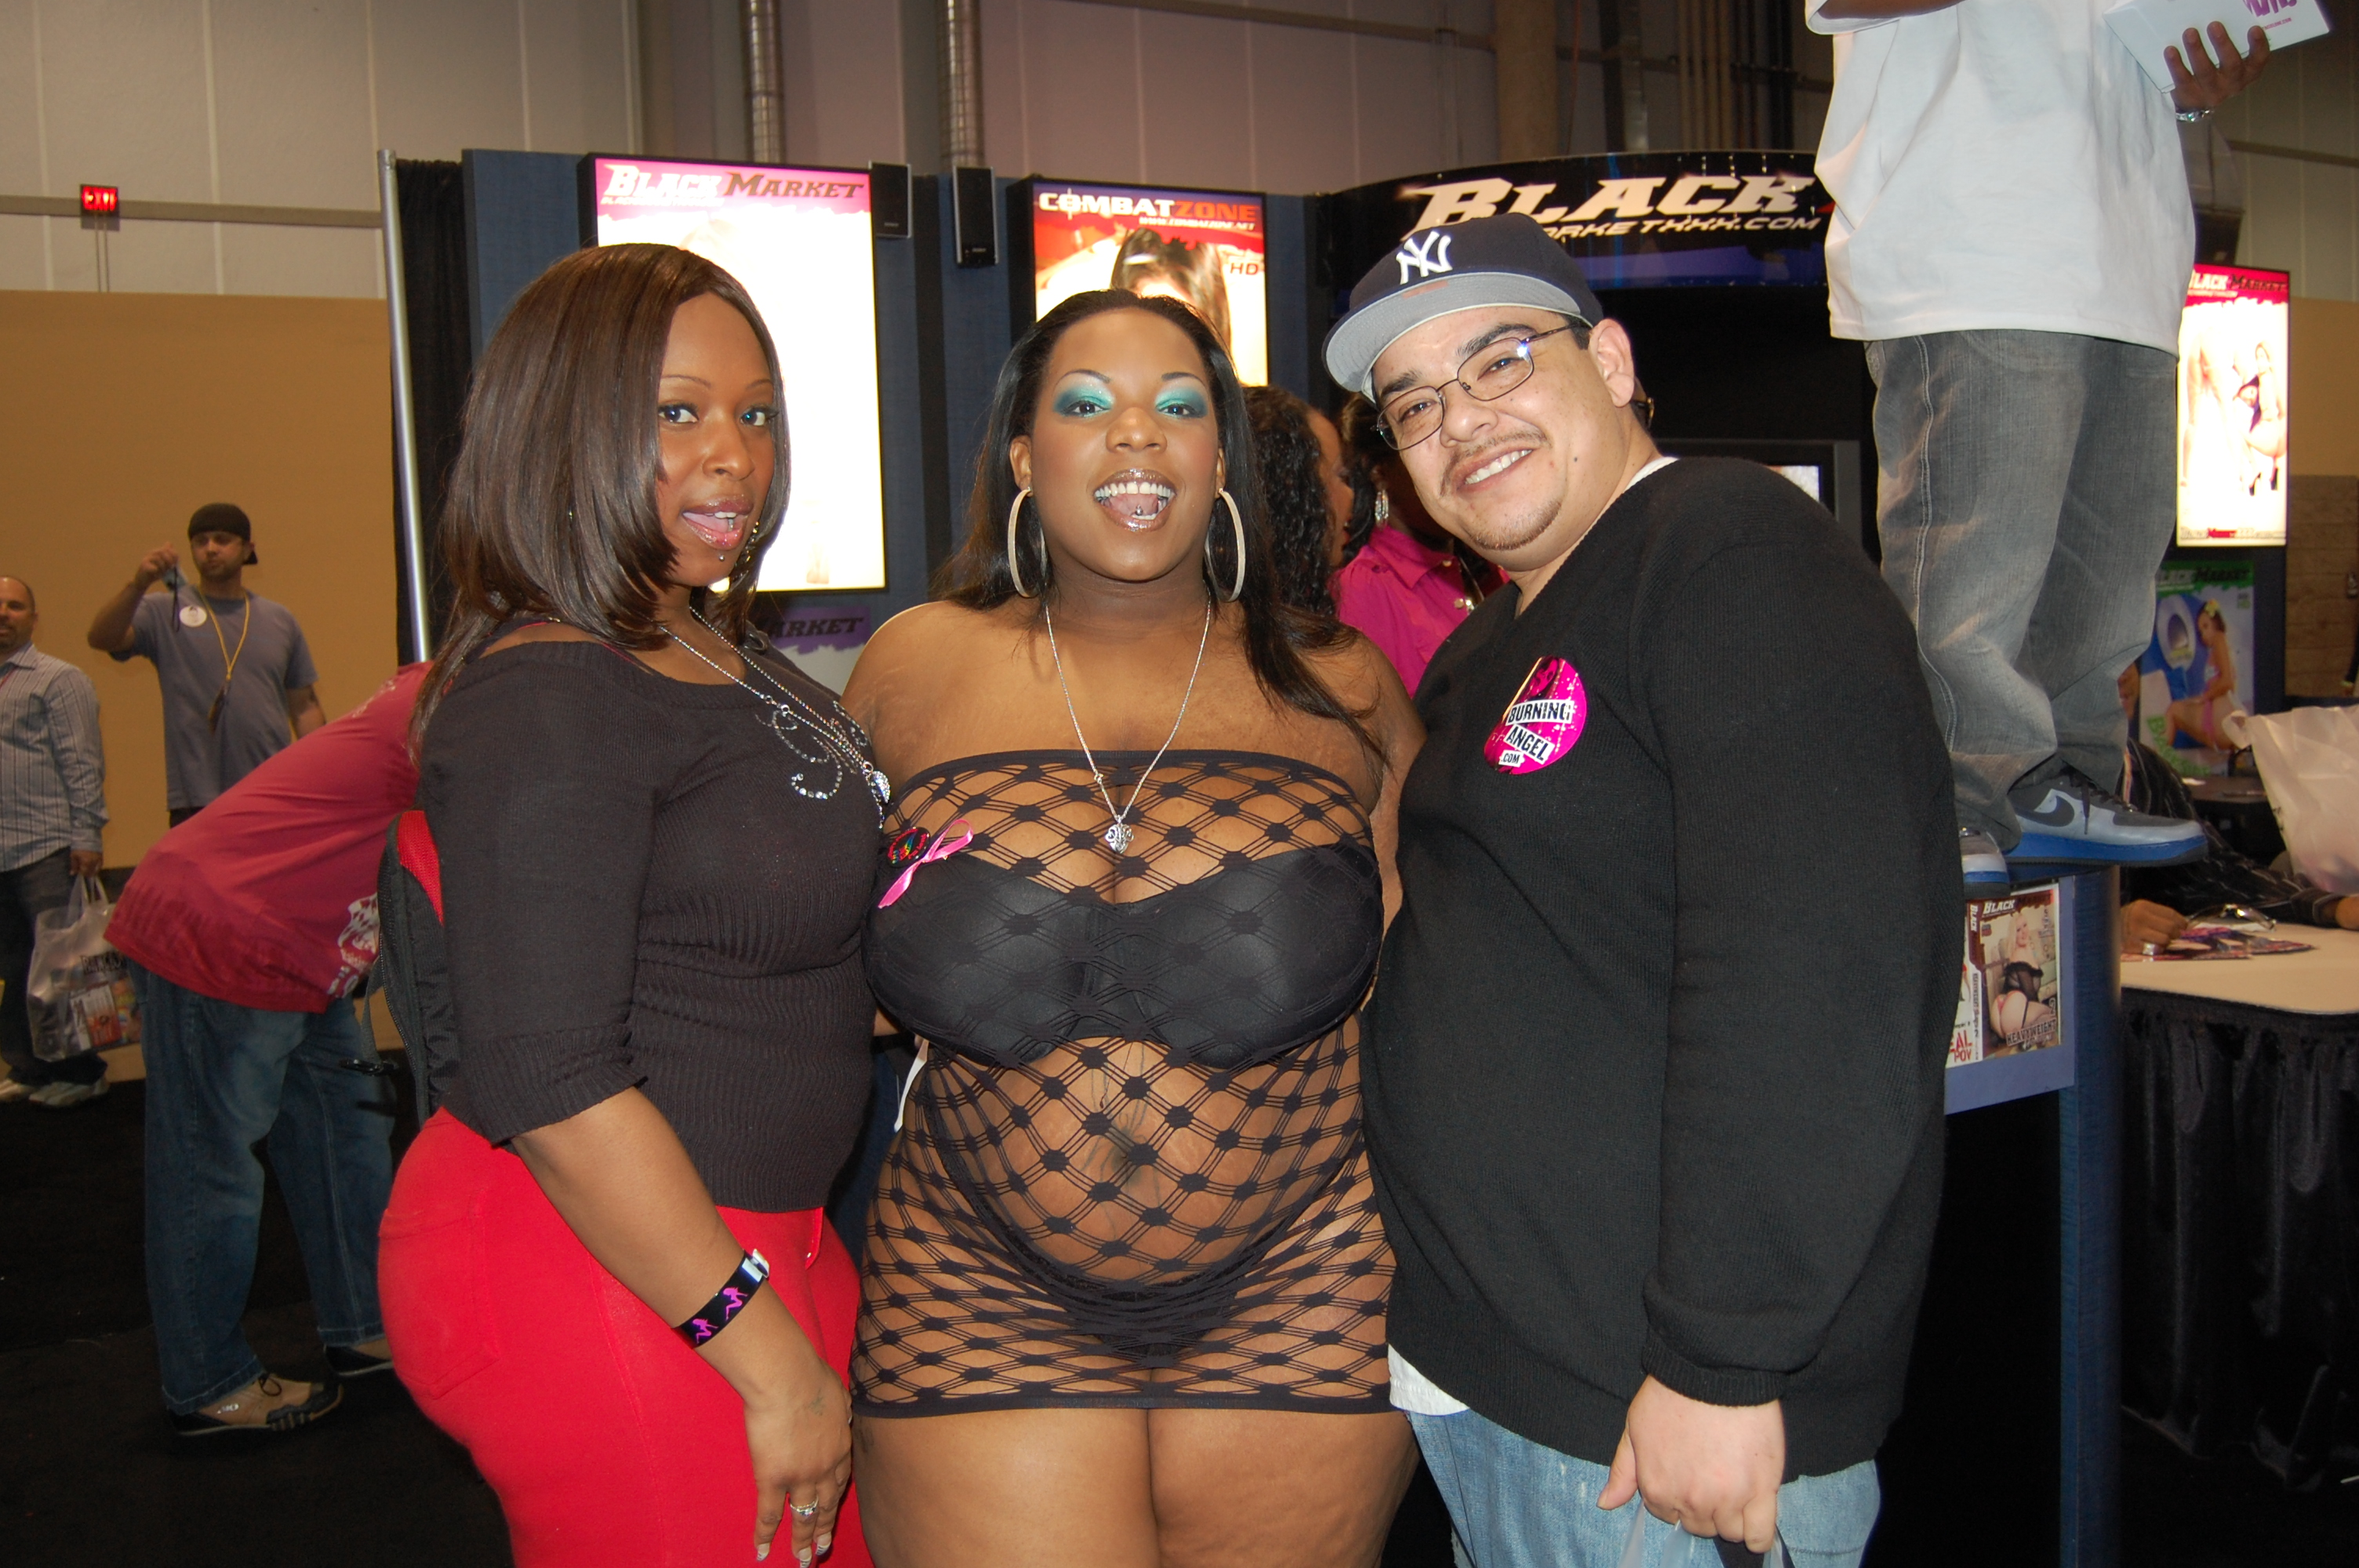 File:Skyy Black, Crystal Clear at AVN Adult Entertainment Expo 2009.jpg